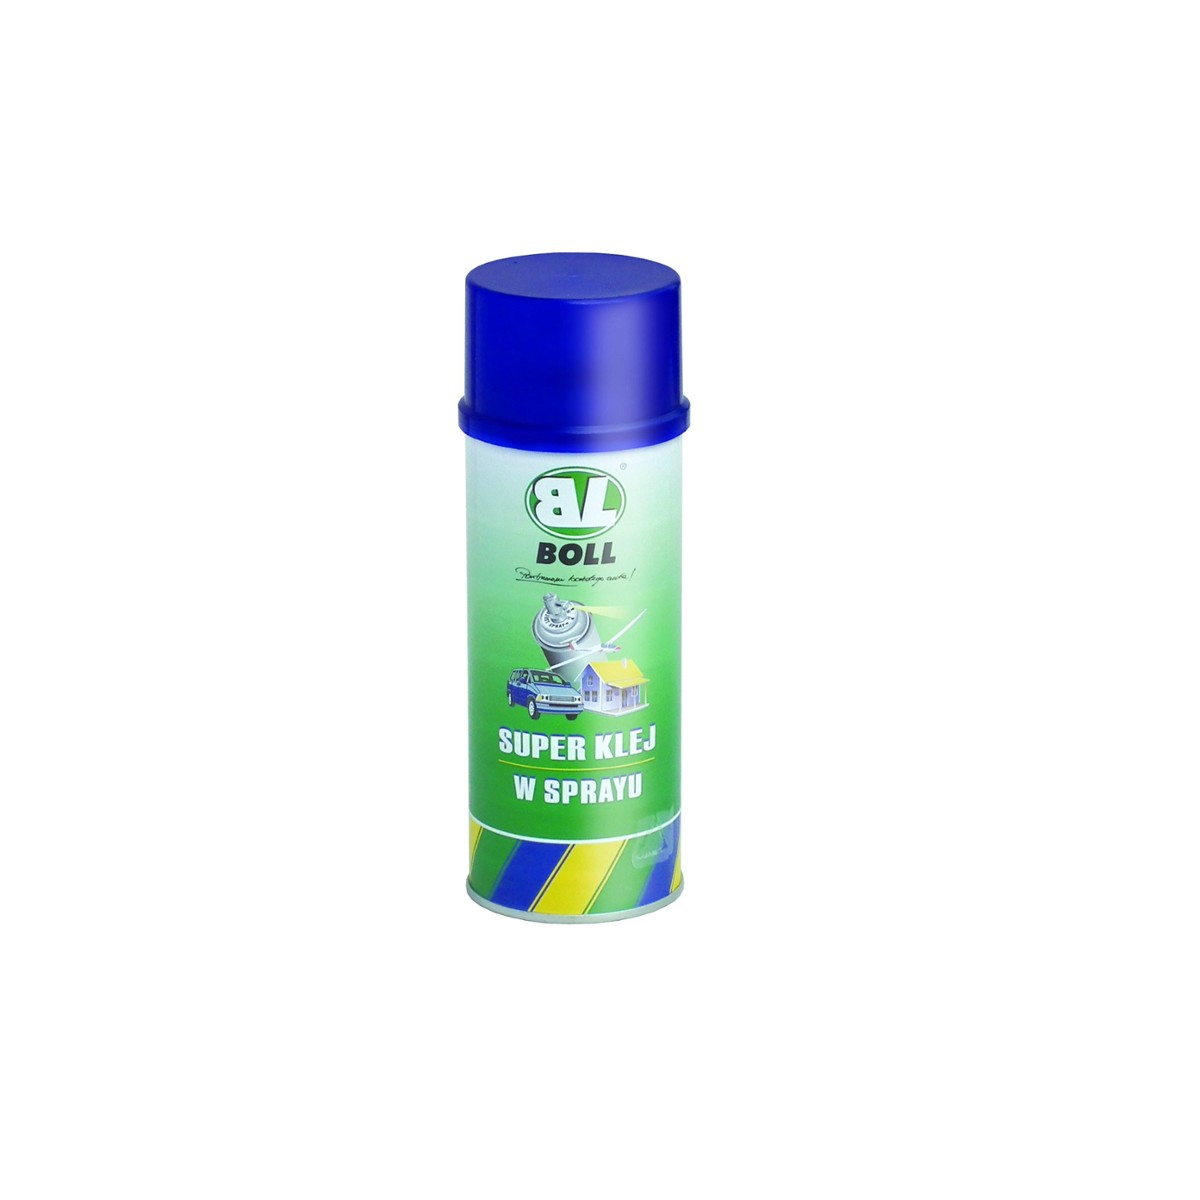 BOLL super klej - spray 400ml